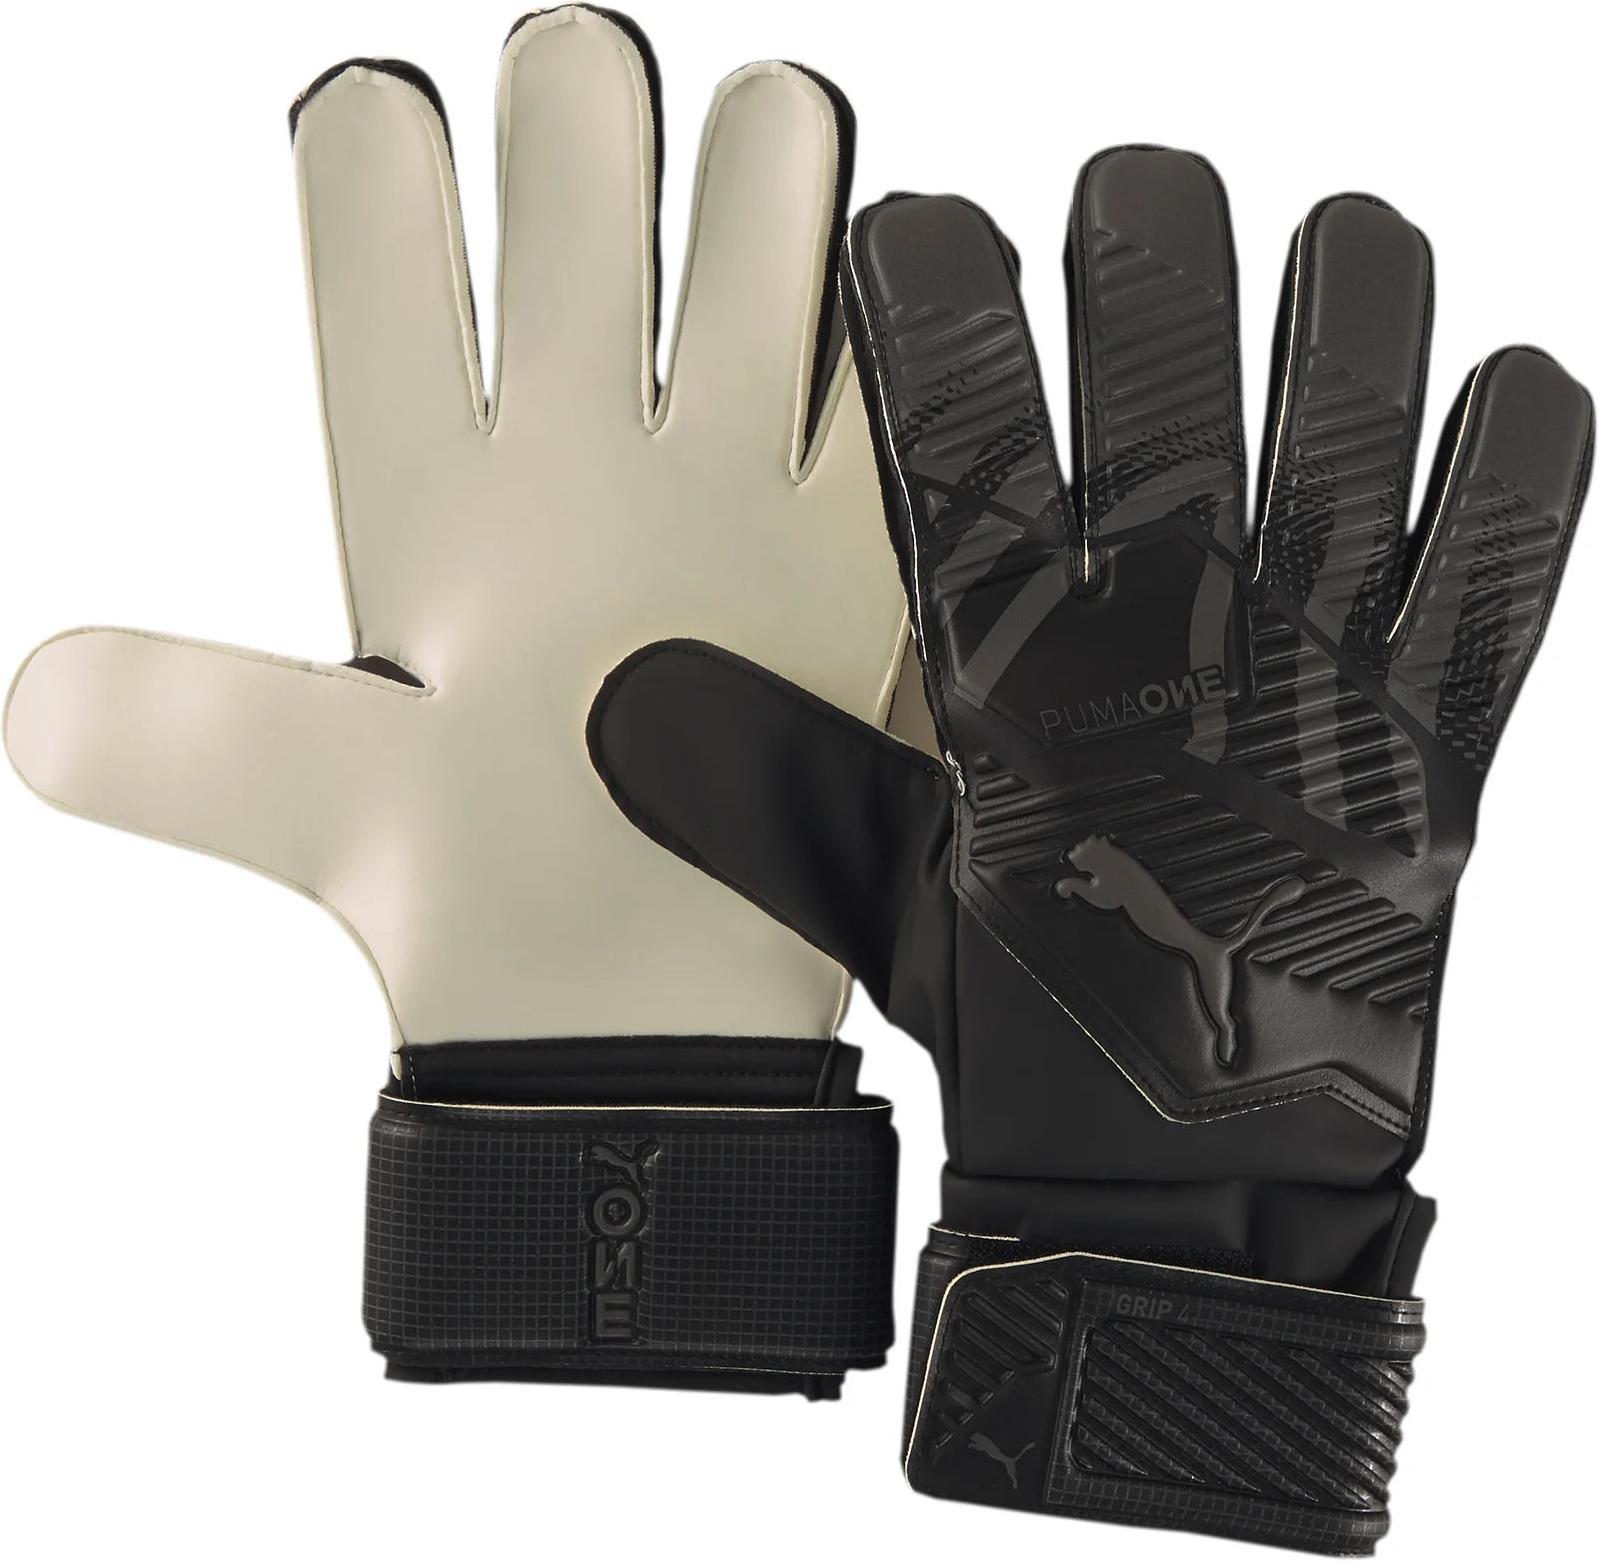 Guantes de portero Puma One Grip 4 RC